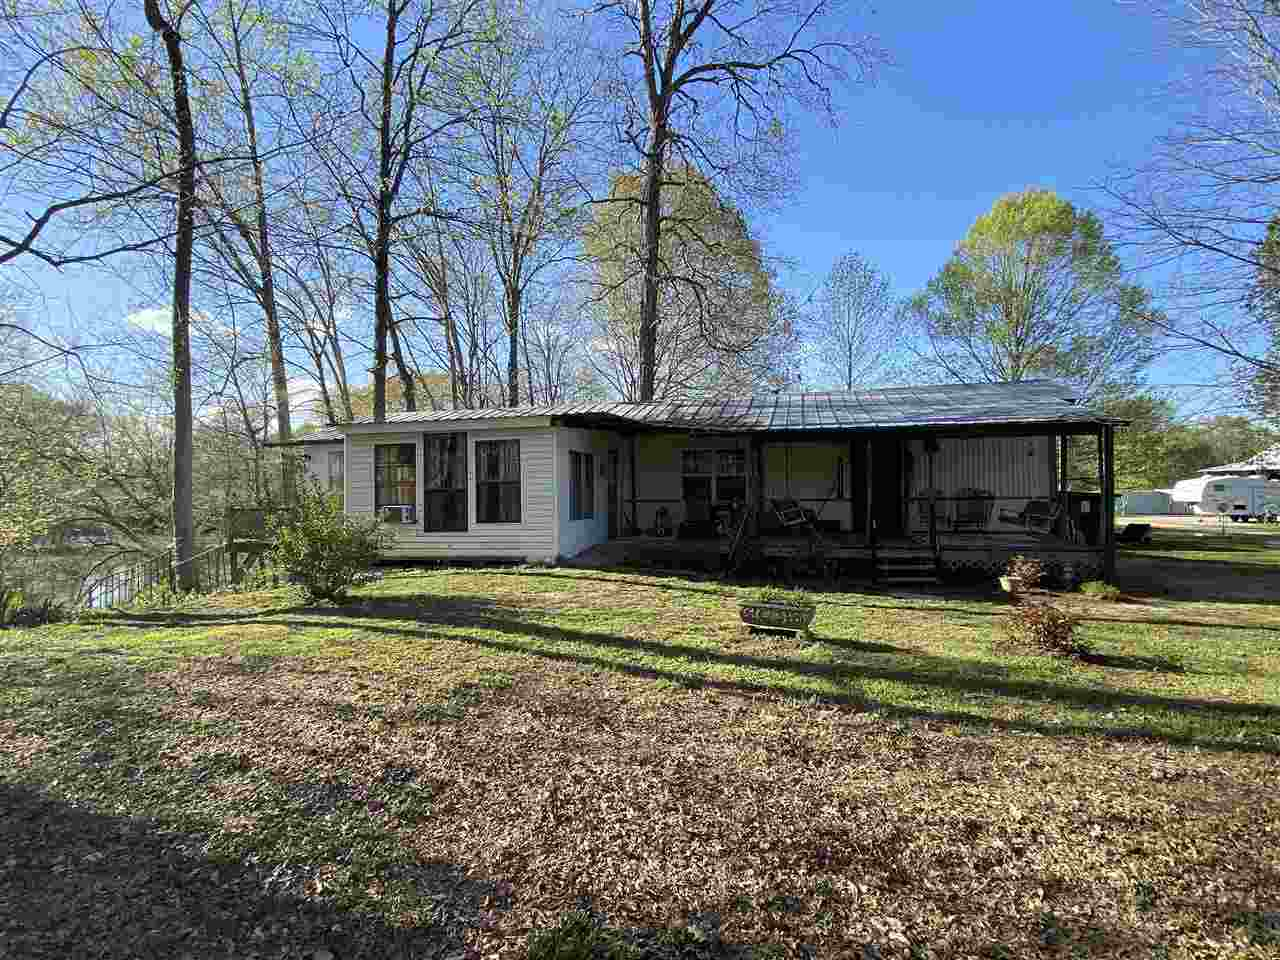 71 Boat Ramp Lane, Decaturville, Tennessee 38329, 2 Bedrooms Bedrooms, ,1 BathroomBathrooms,Residential,For Sale,71 Boat Ramp Lane,206482